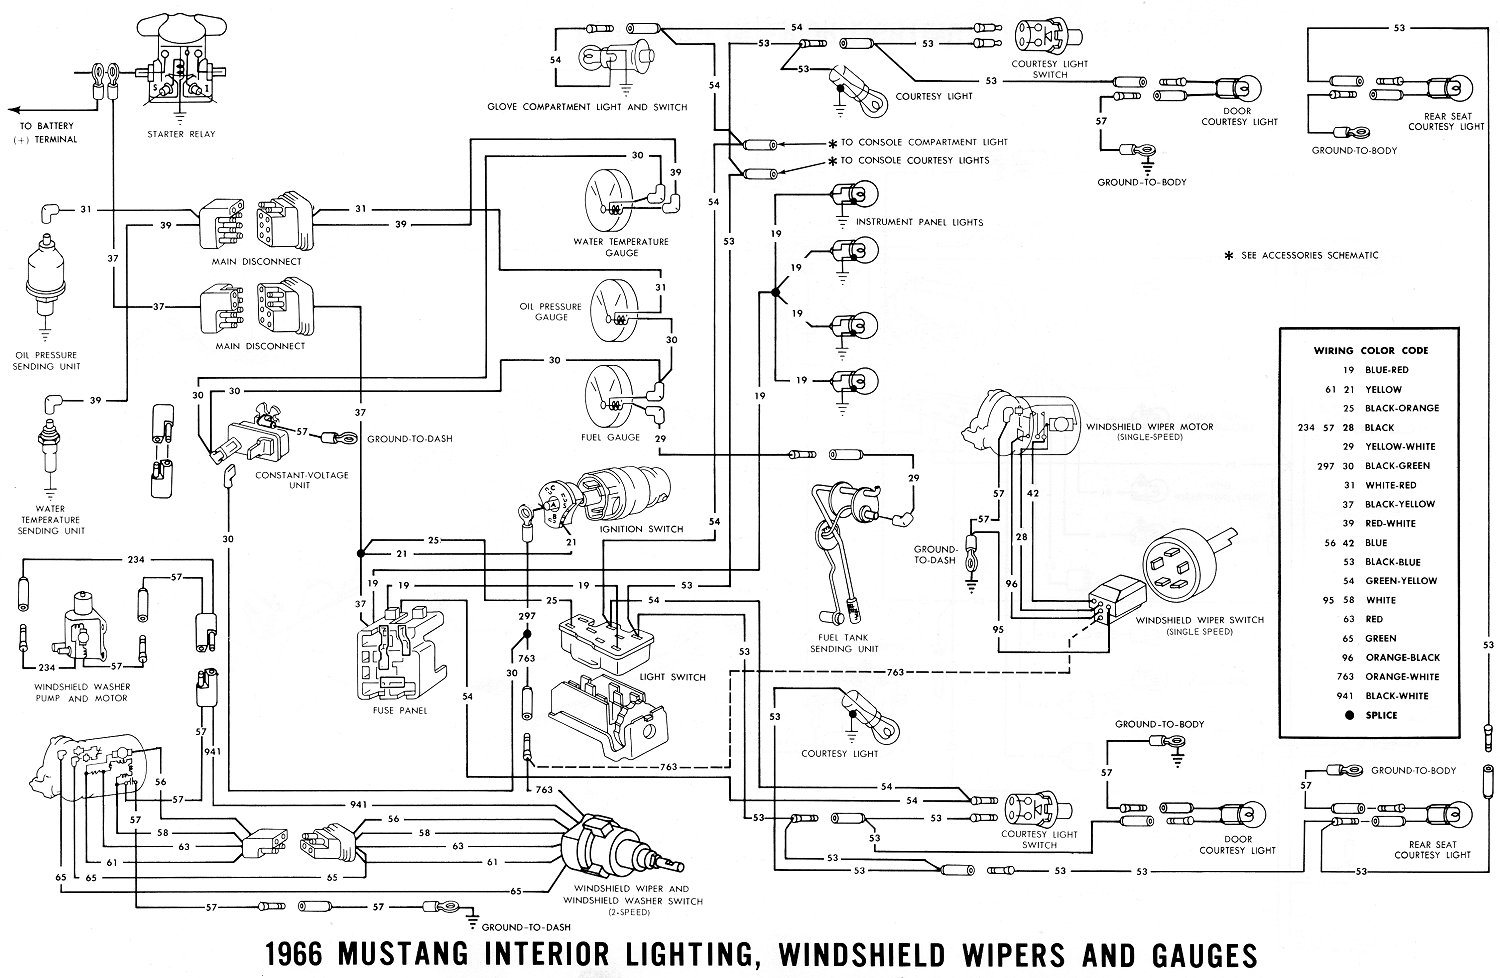 Vintage Mustang Wiring Diagrams Light And Schematic 66 Interior Lighting Schematics